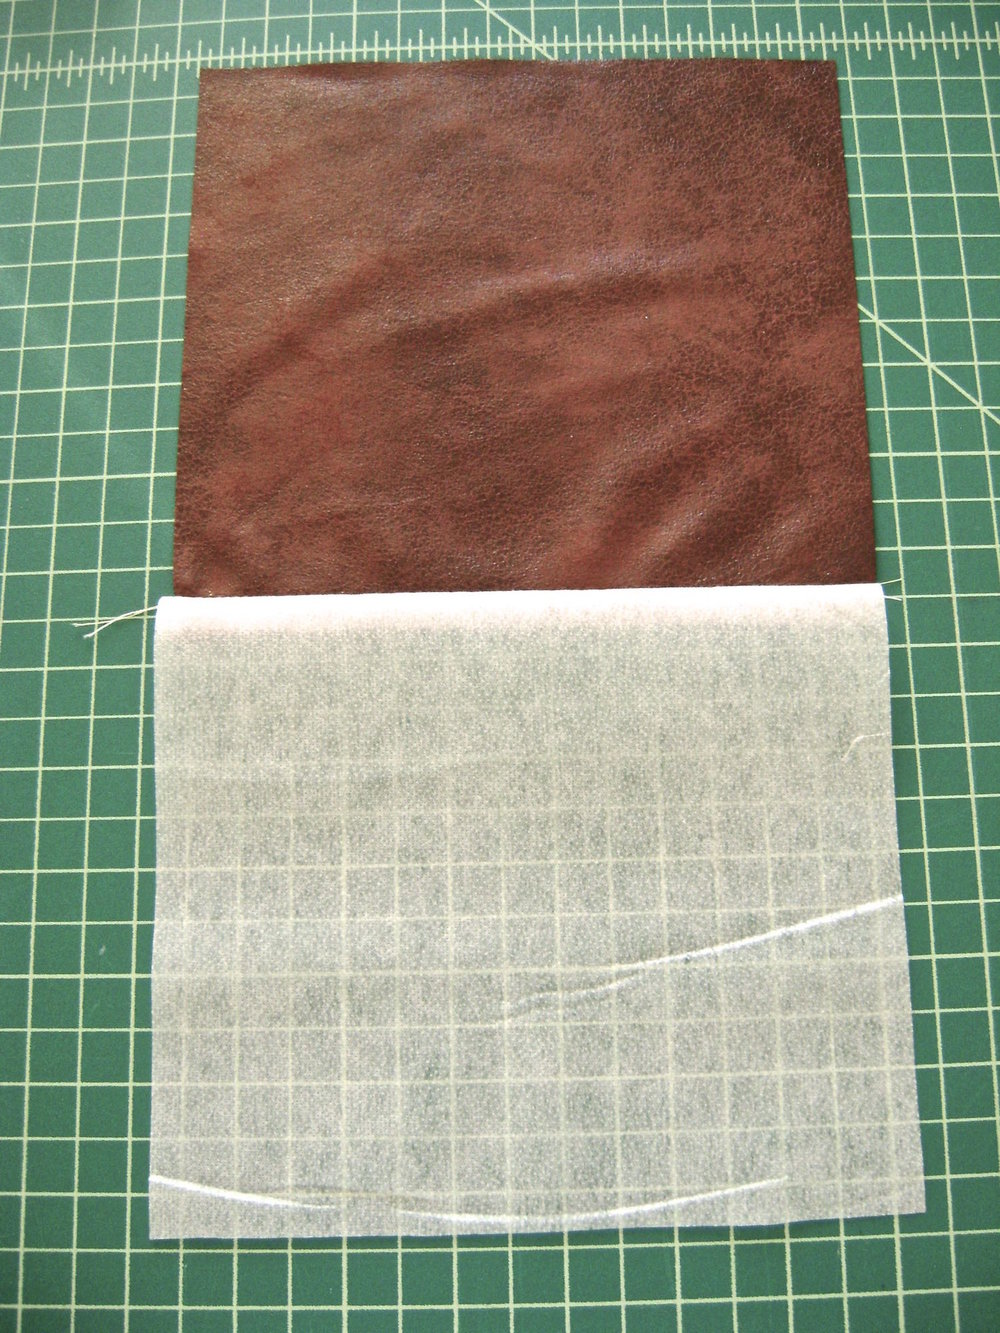 step 15 - With right sides together, sew the pocket interfacing to the pocket fabric.